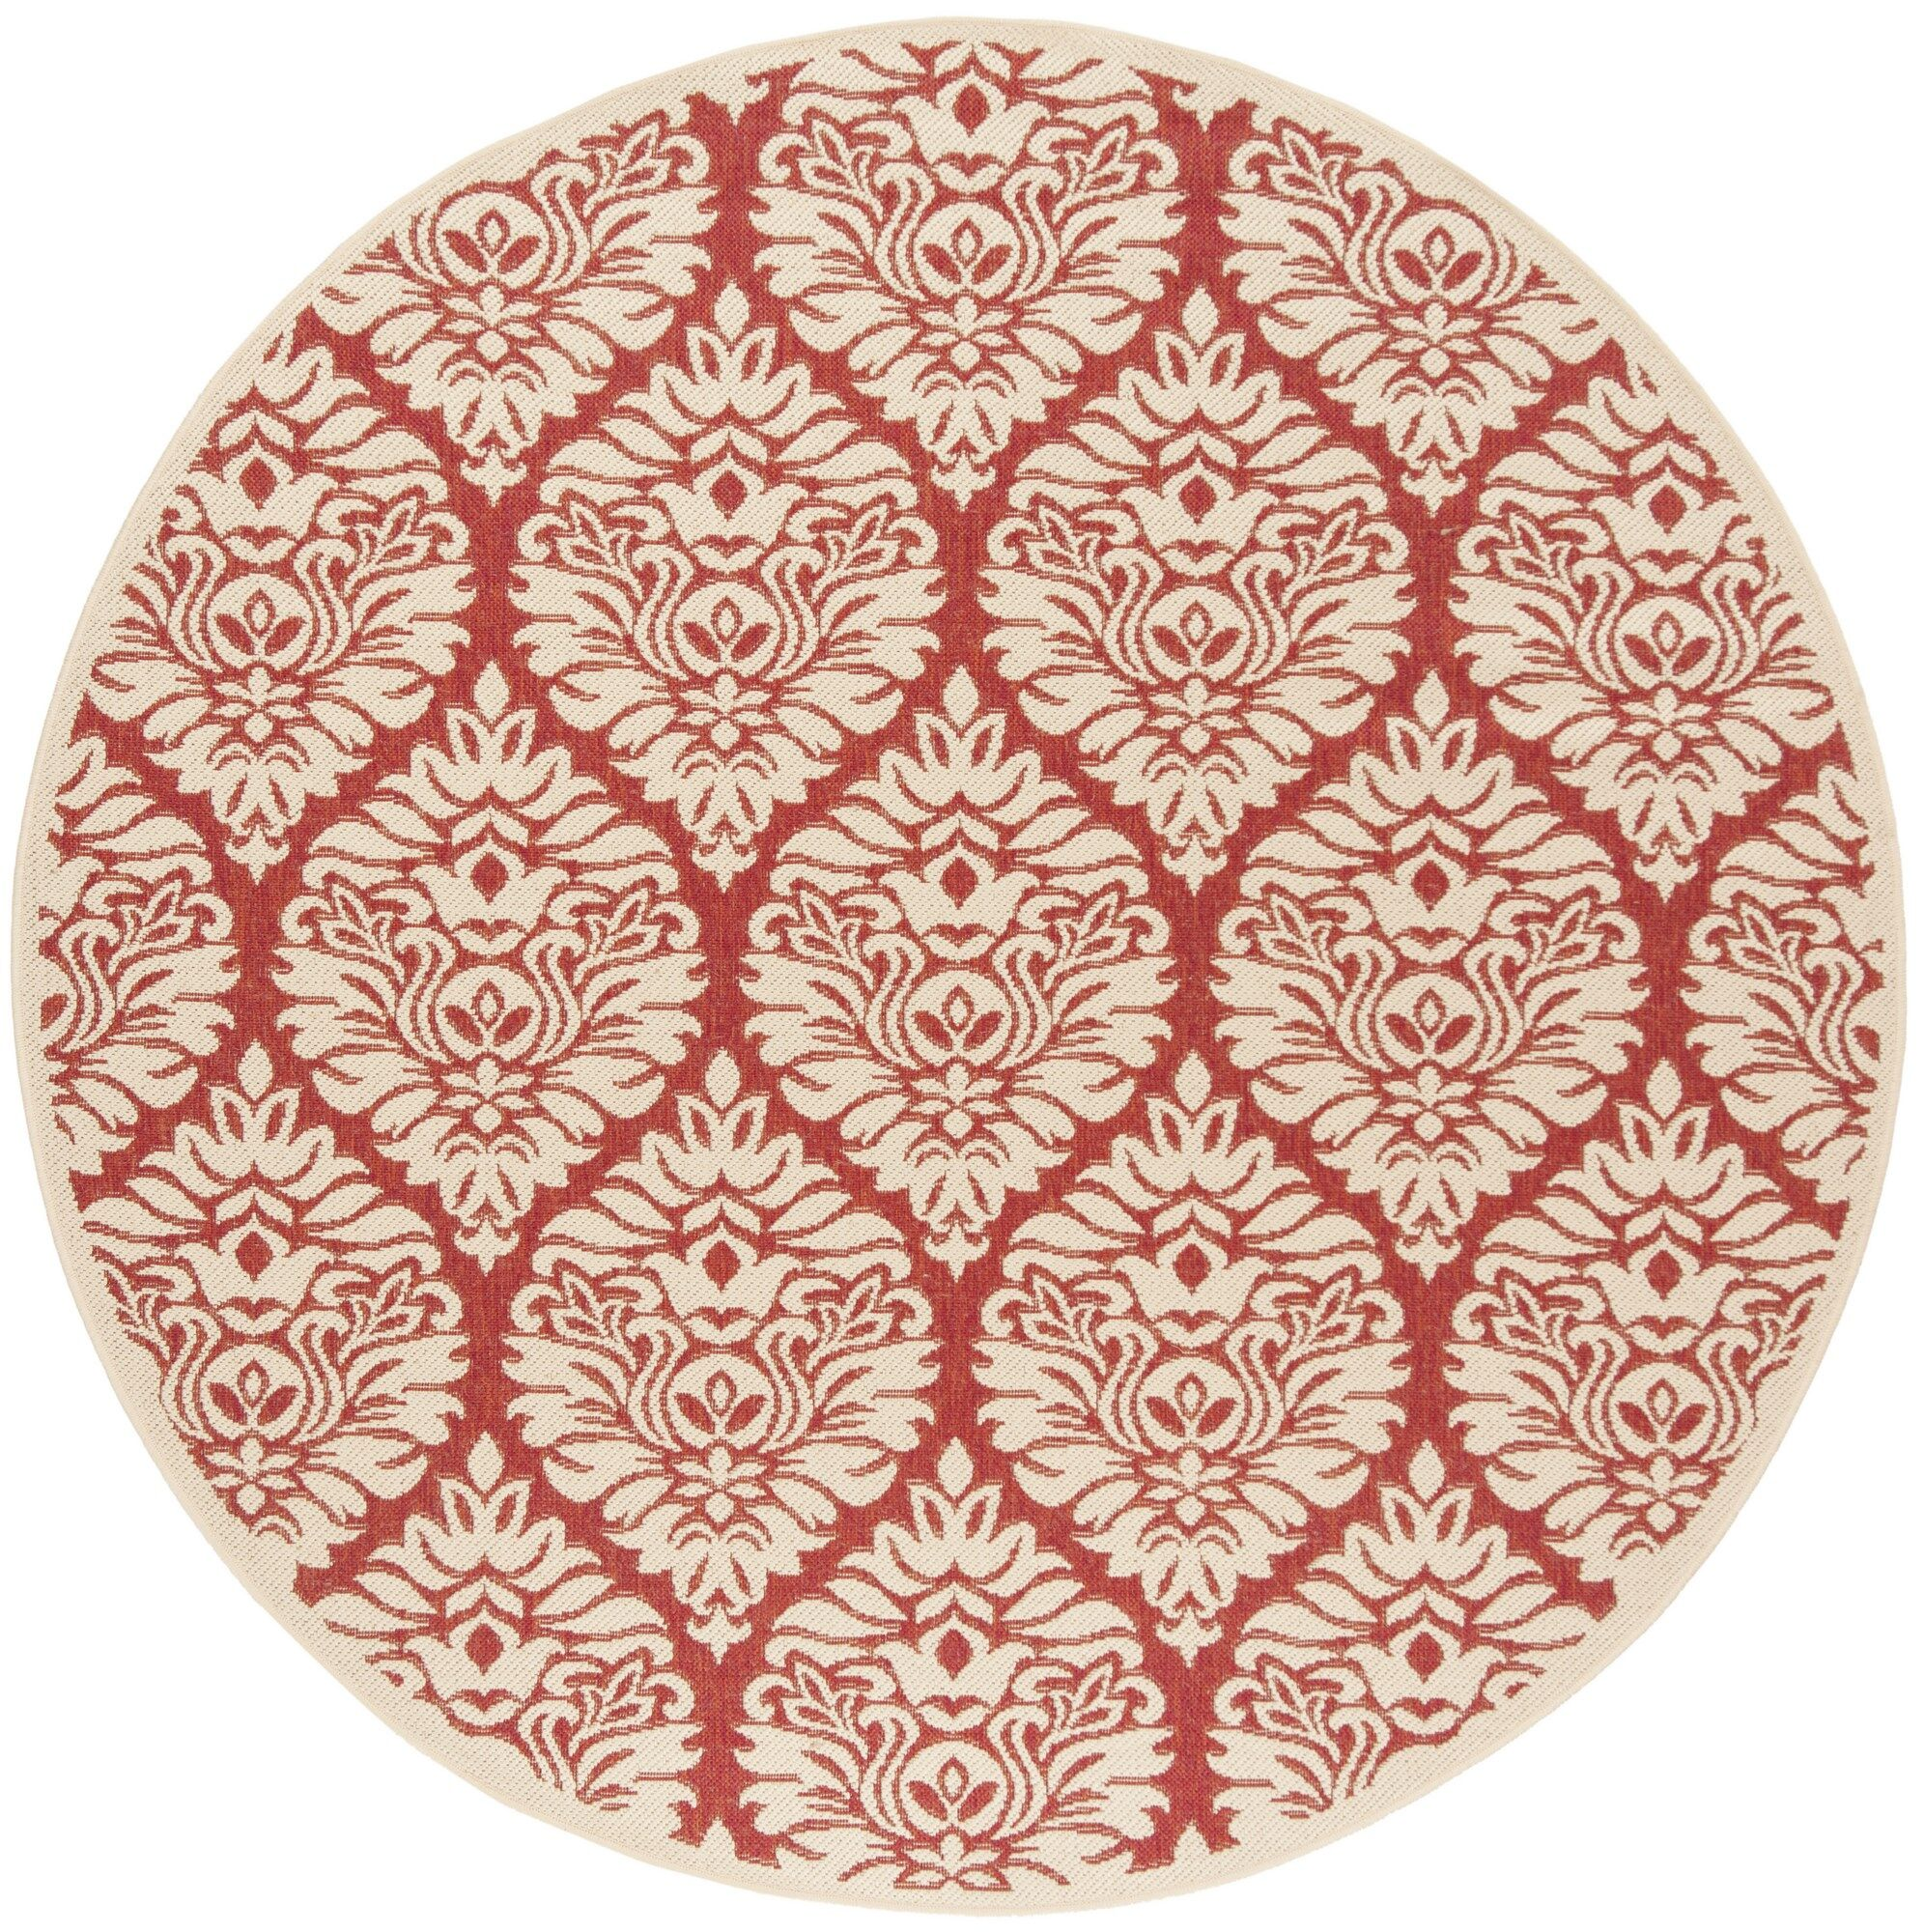 Dreher Red/Creme Area Rug Rug Size: Round 6'7